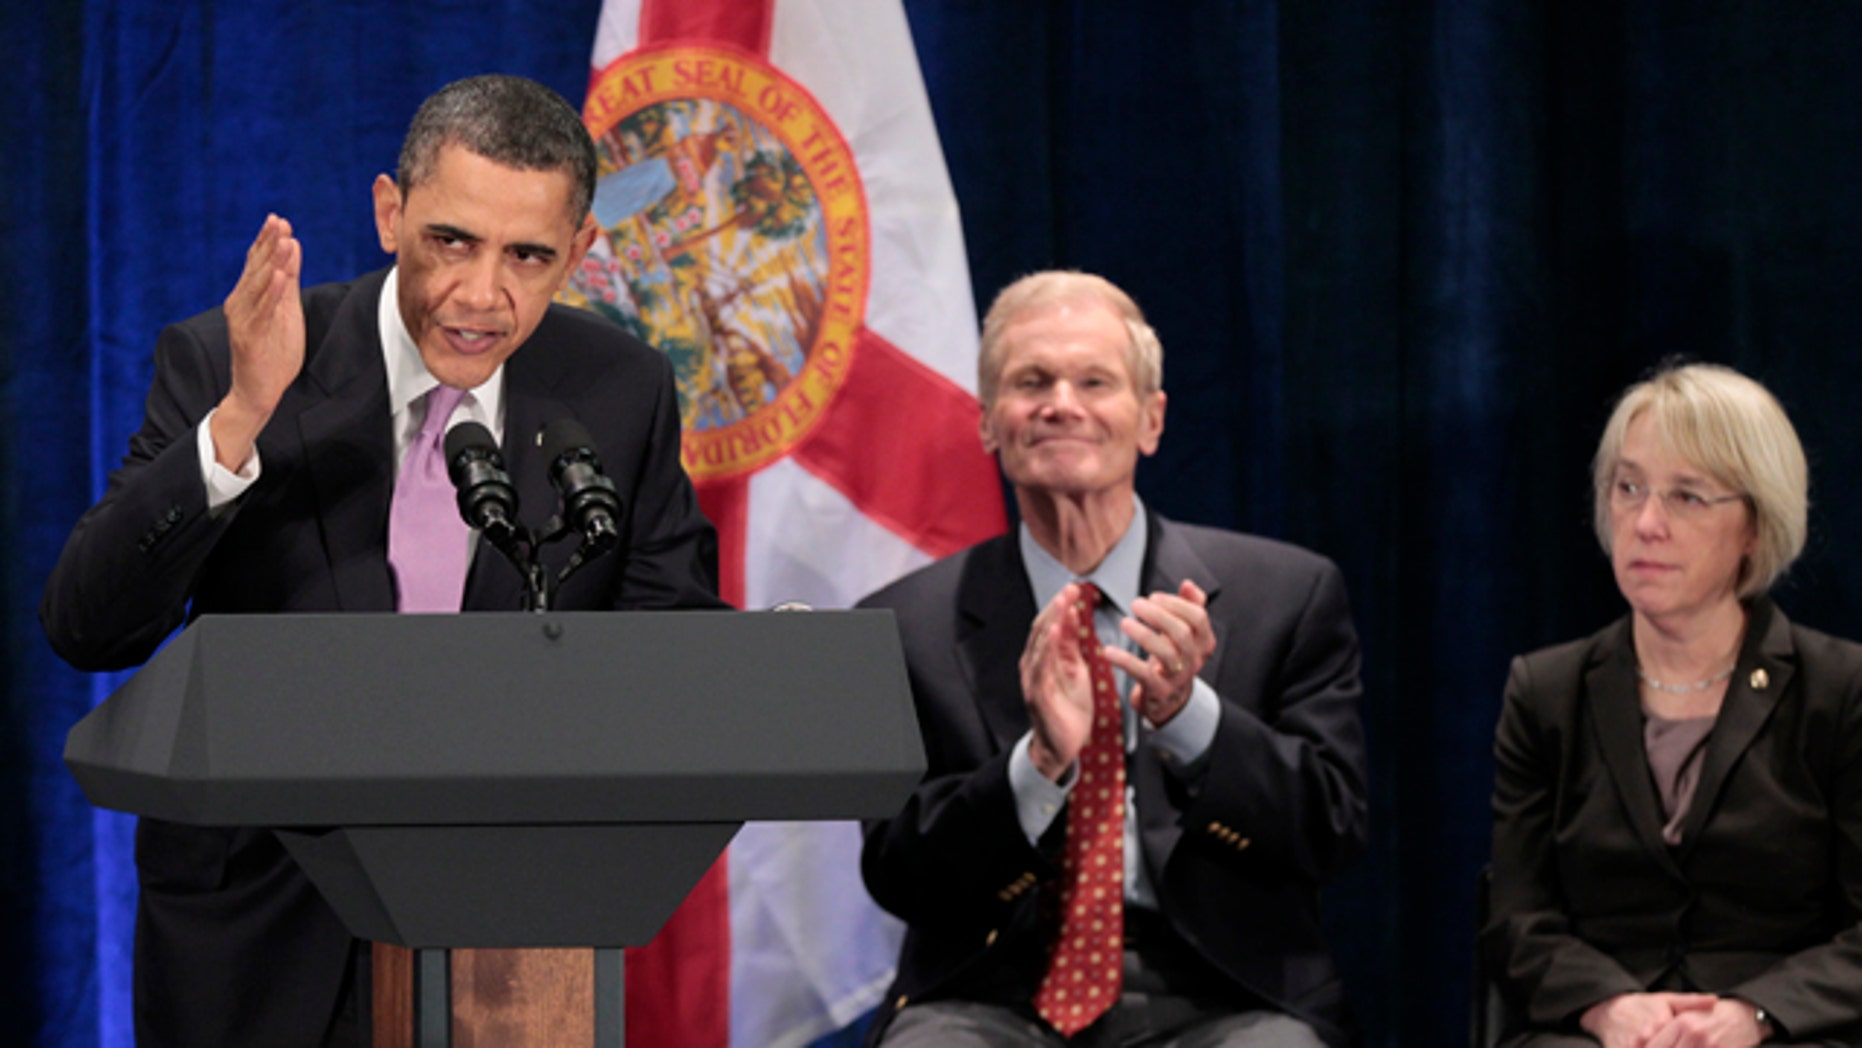 March 4, 2011: President Barack Obama, left, with Sen. Bill Nelson, D-Fla., center, and Sen. Patty Murray, D-Wash., right, during a Democratic fundraiser at Fontainebleau Resort.